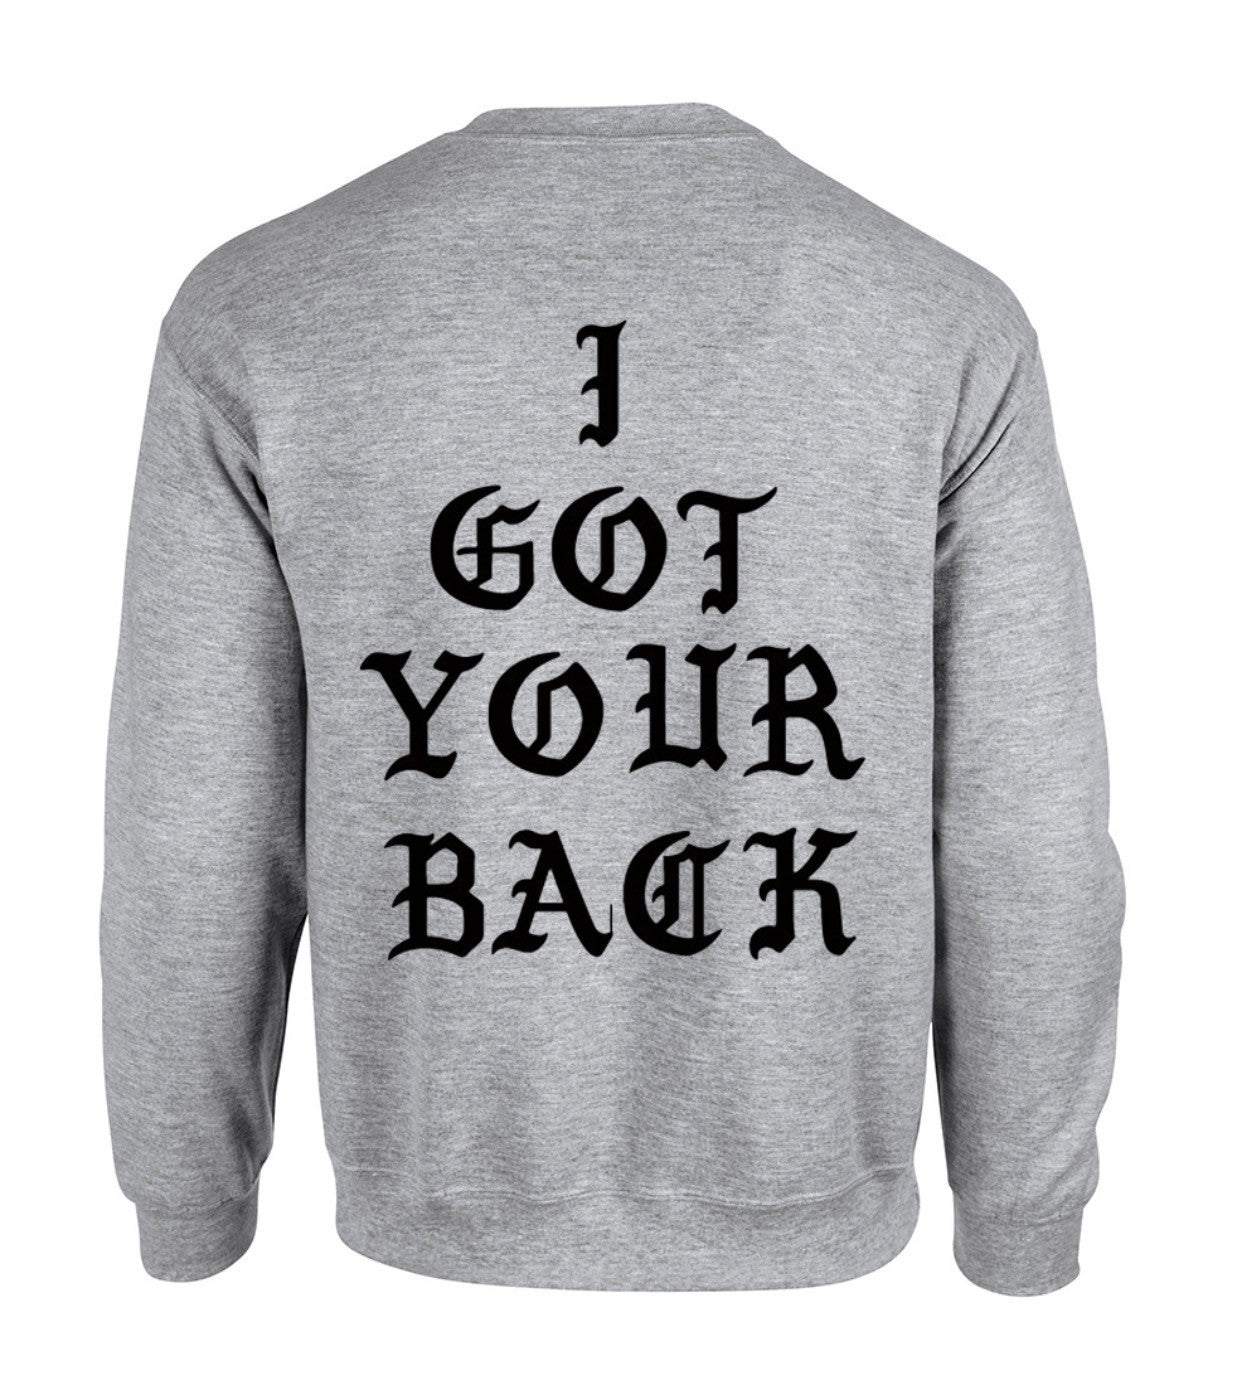 "I GOT YOUR BACK "" CREW NECK SWEATER"